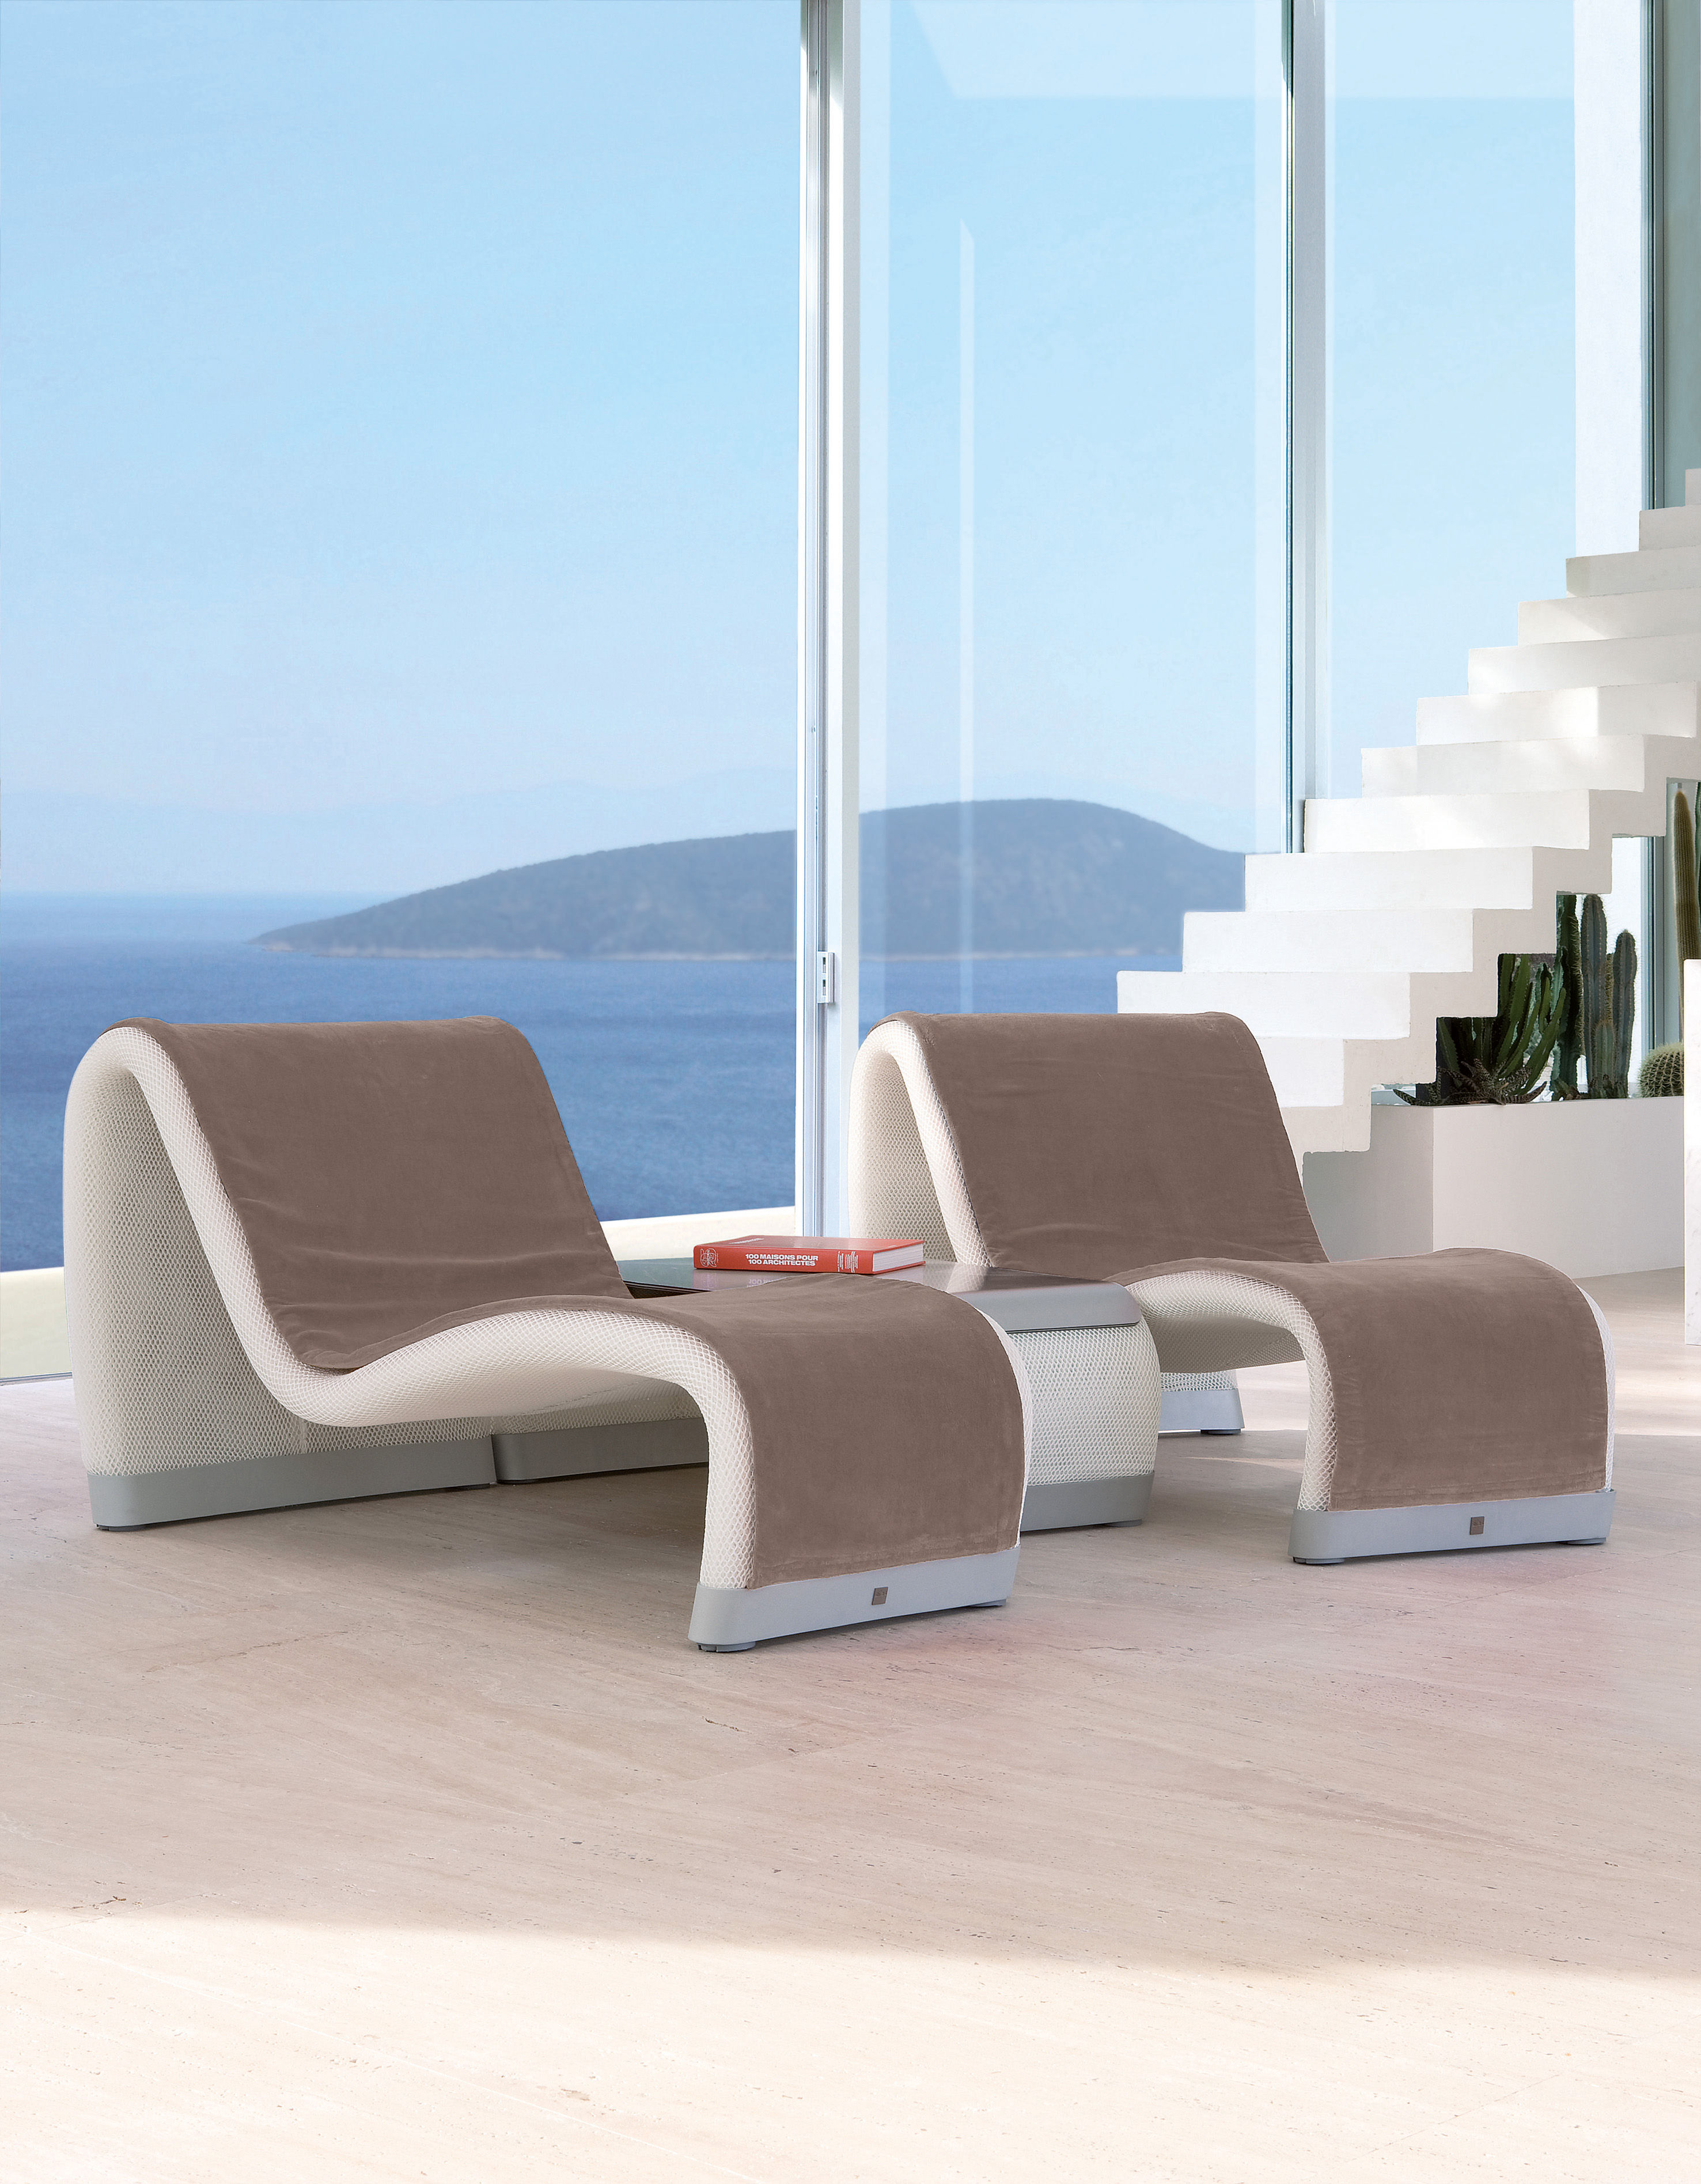 Sakura t 140 cm sifas liege for Lounge liege outdoor